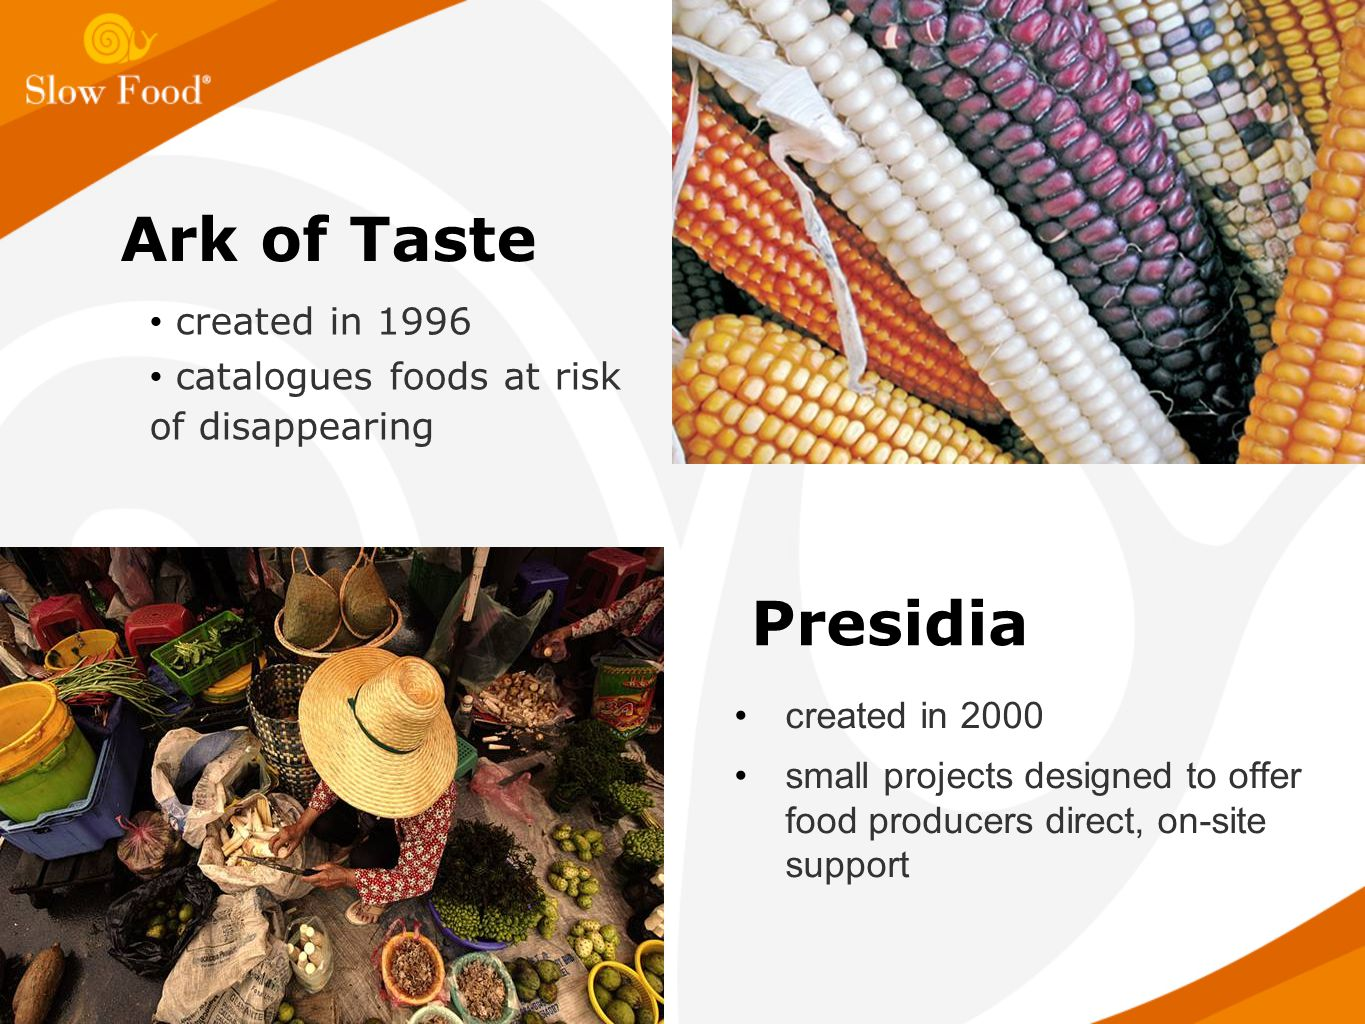 Presidia created in 2000 small projects designed to offer food producers direct, on-site support Ark of Taste created in 1996 catalogues foods at risk of disappearing